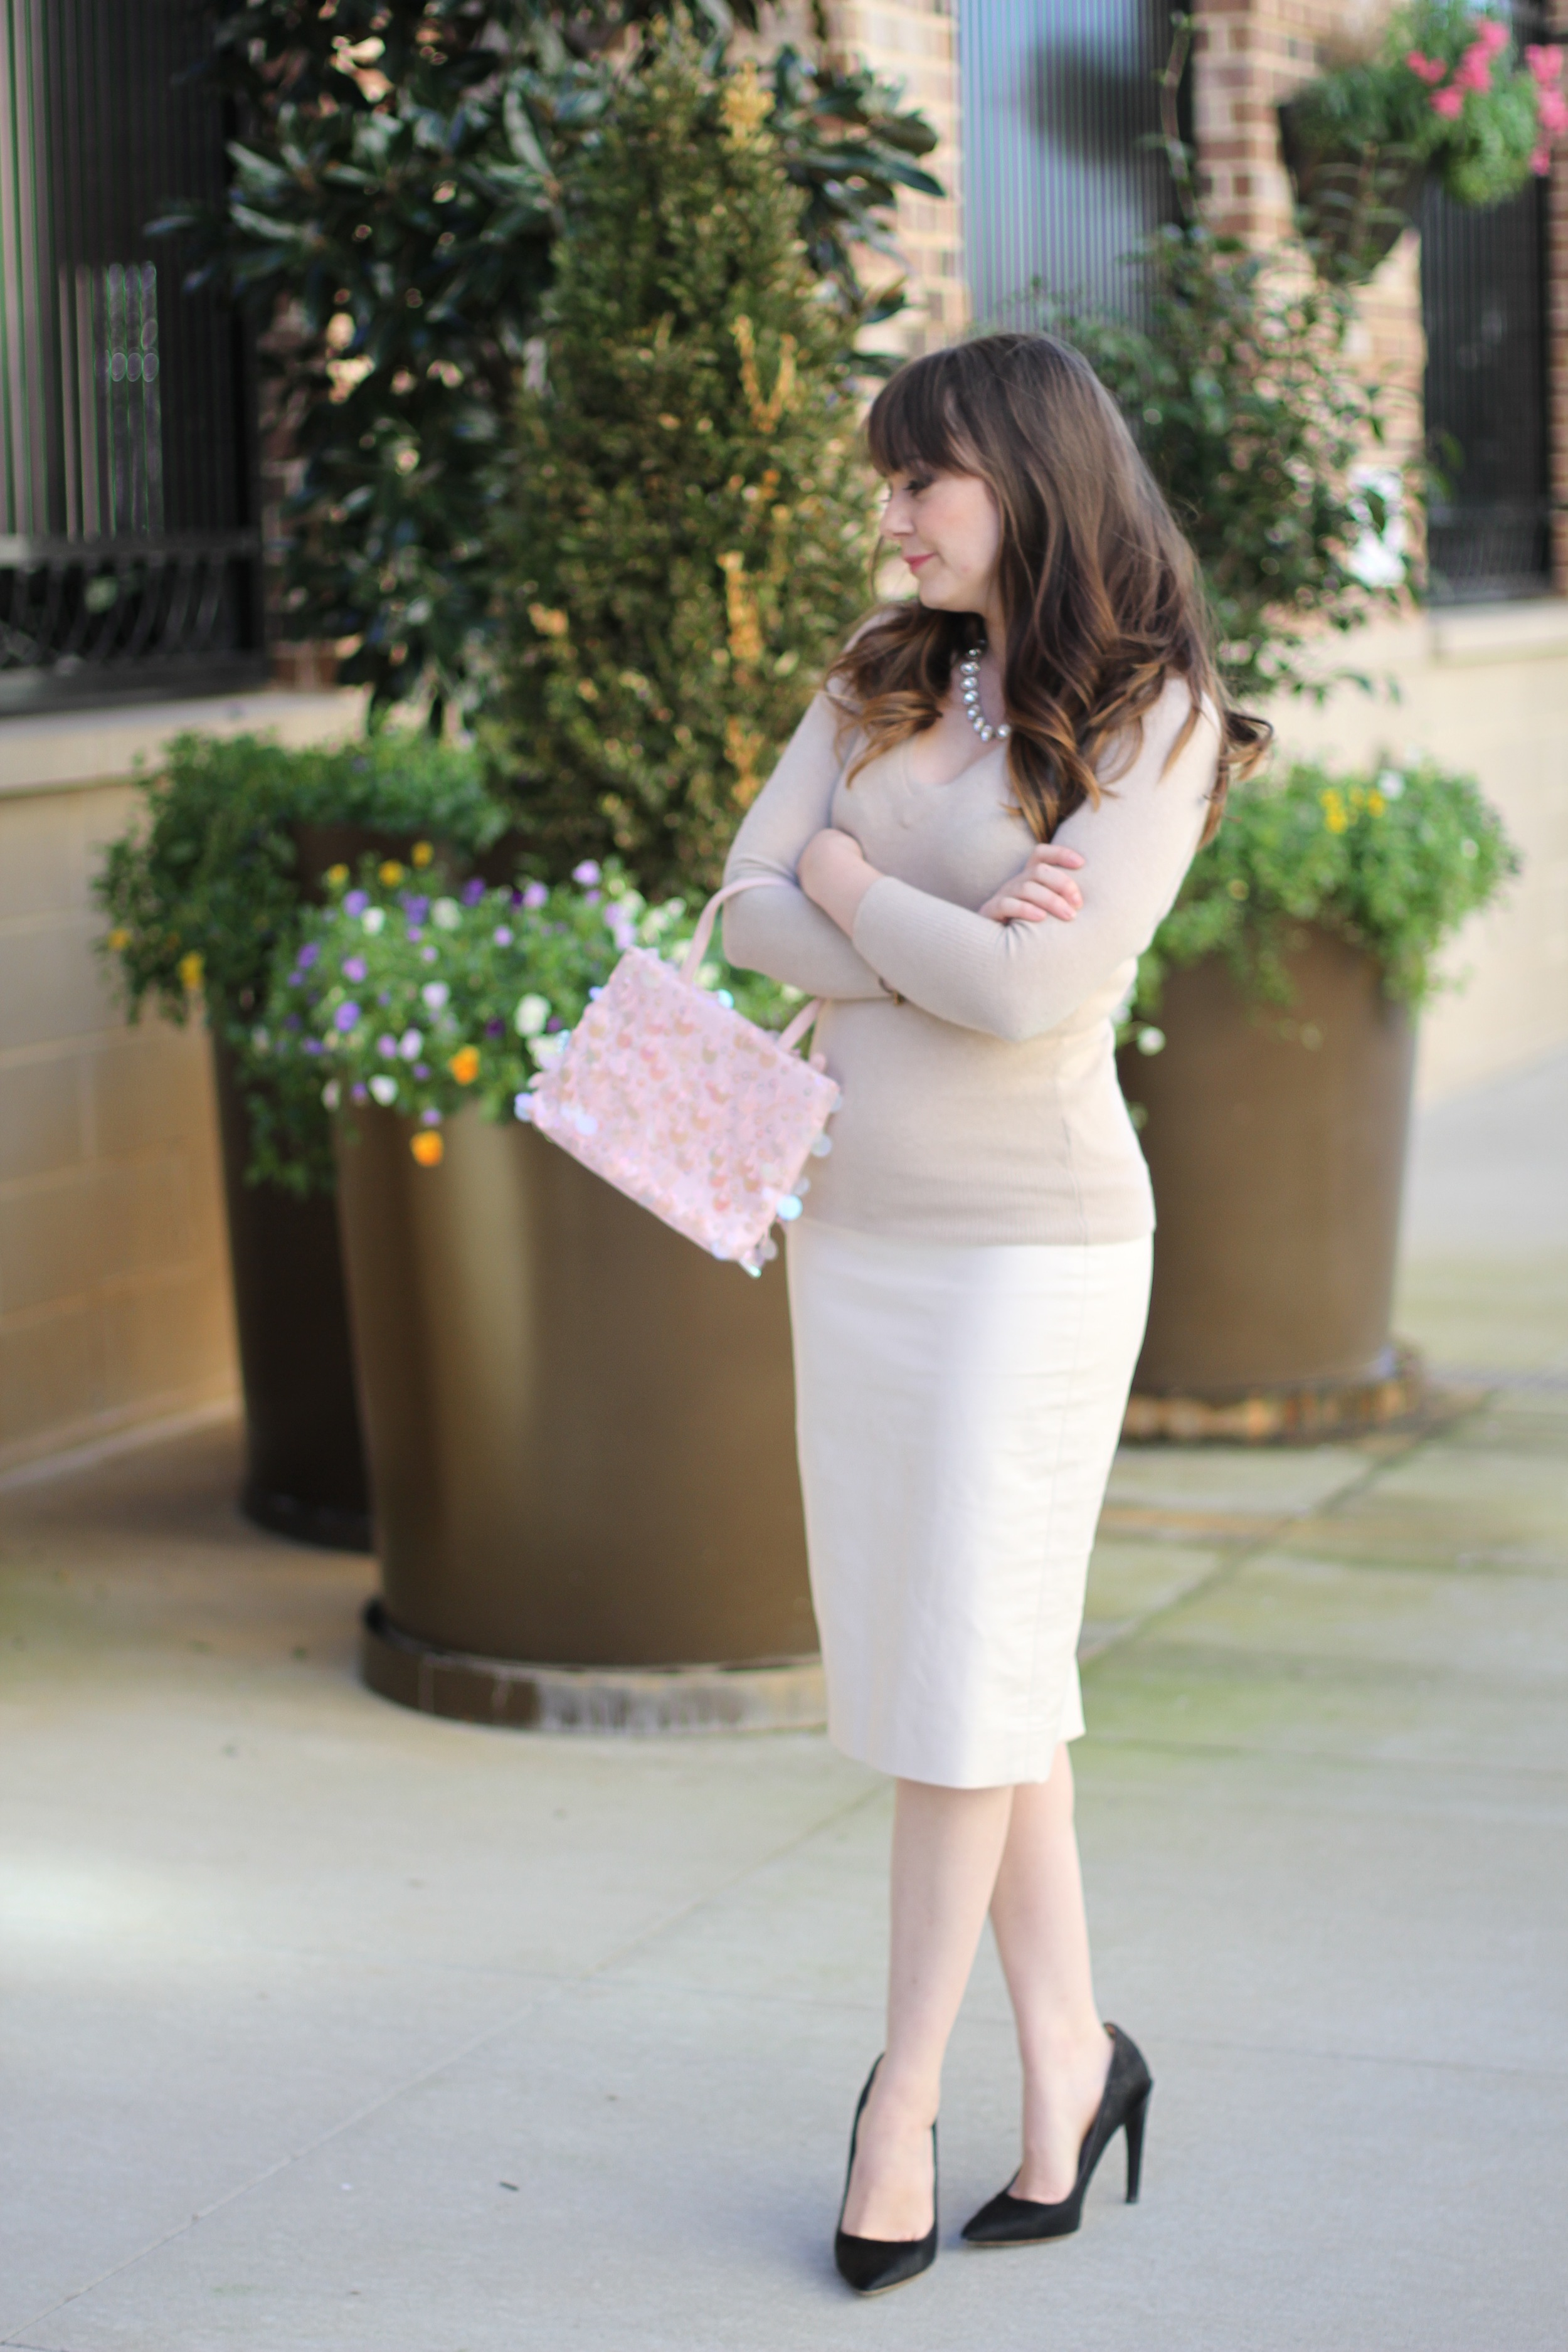 Business Casual | Freckled Italian